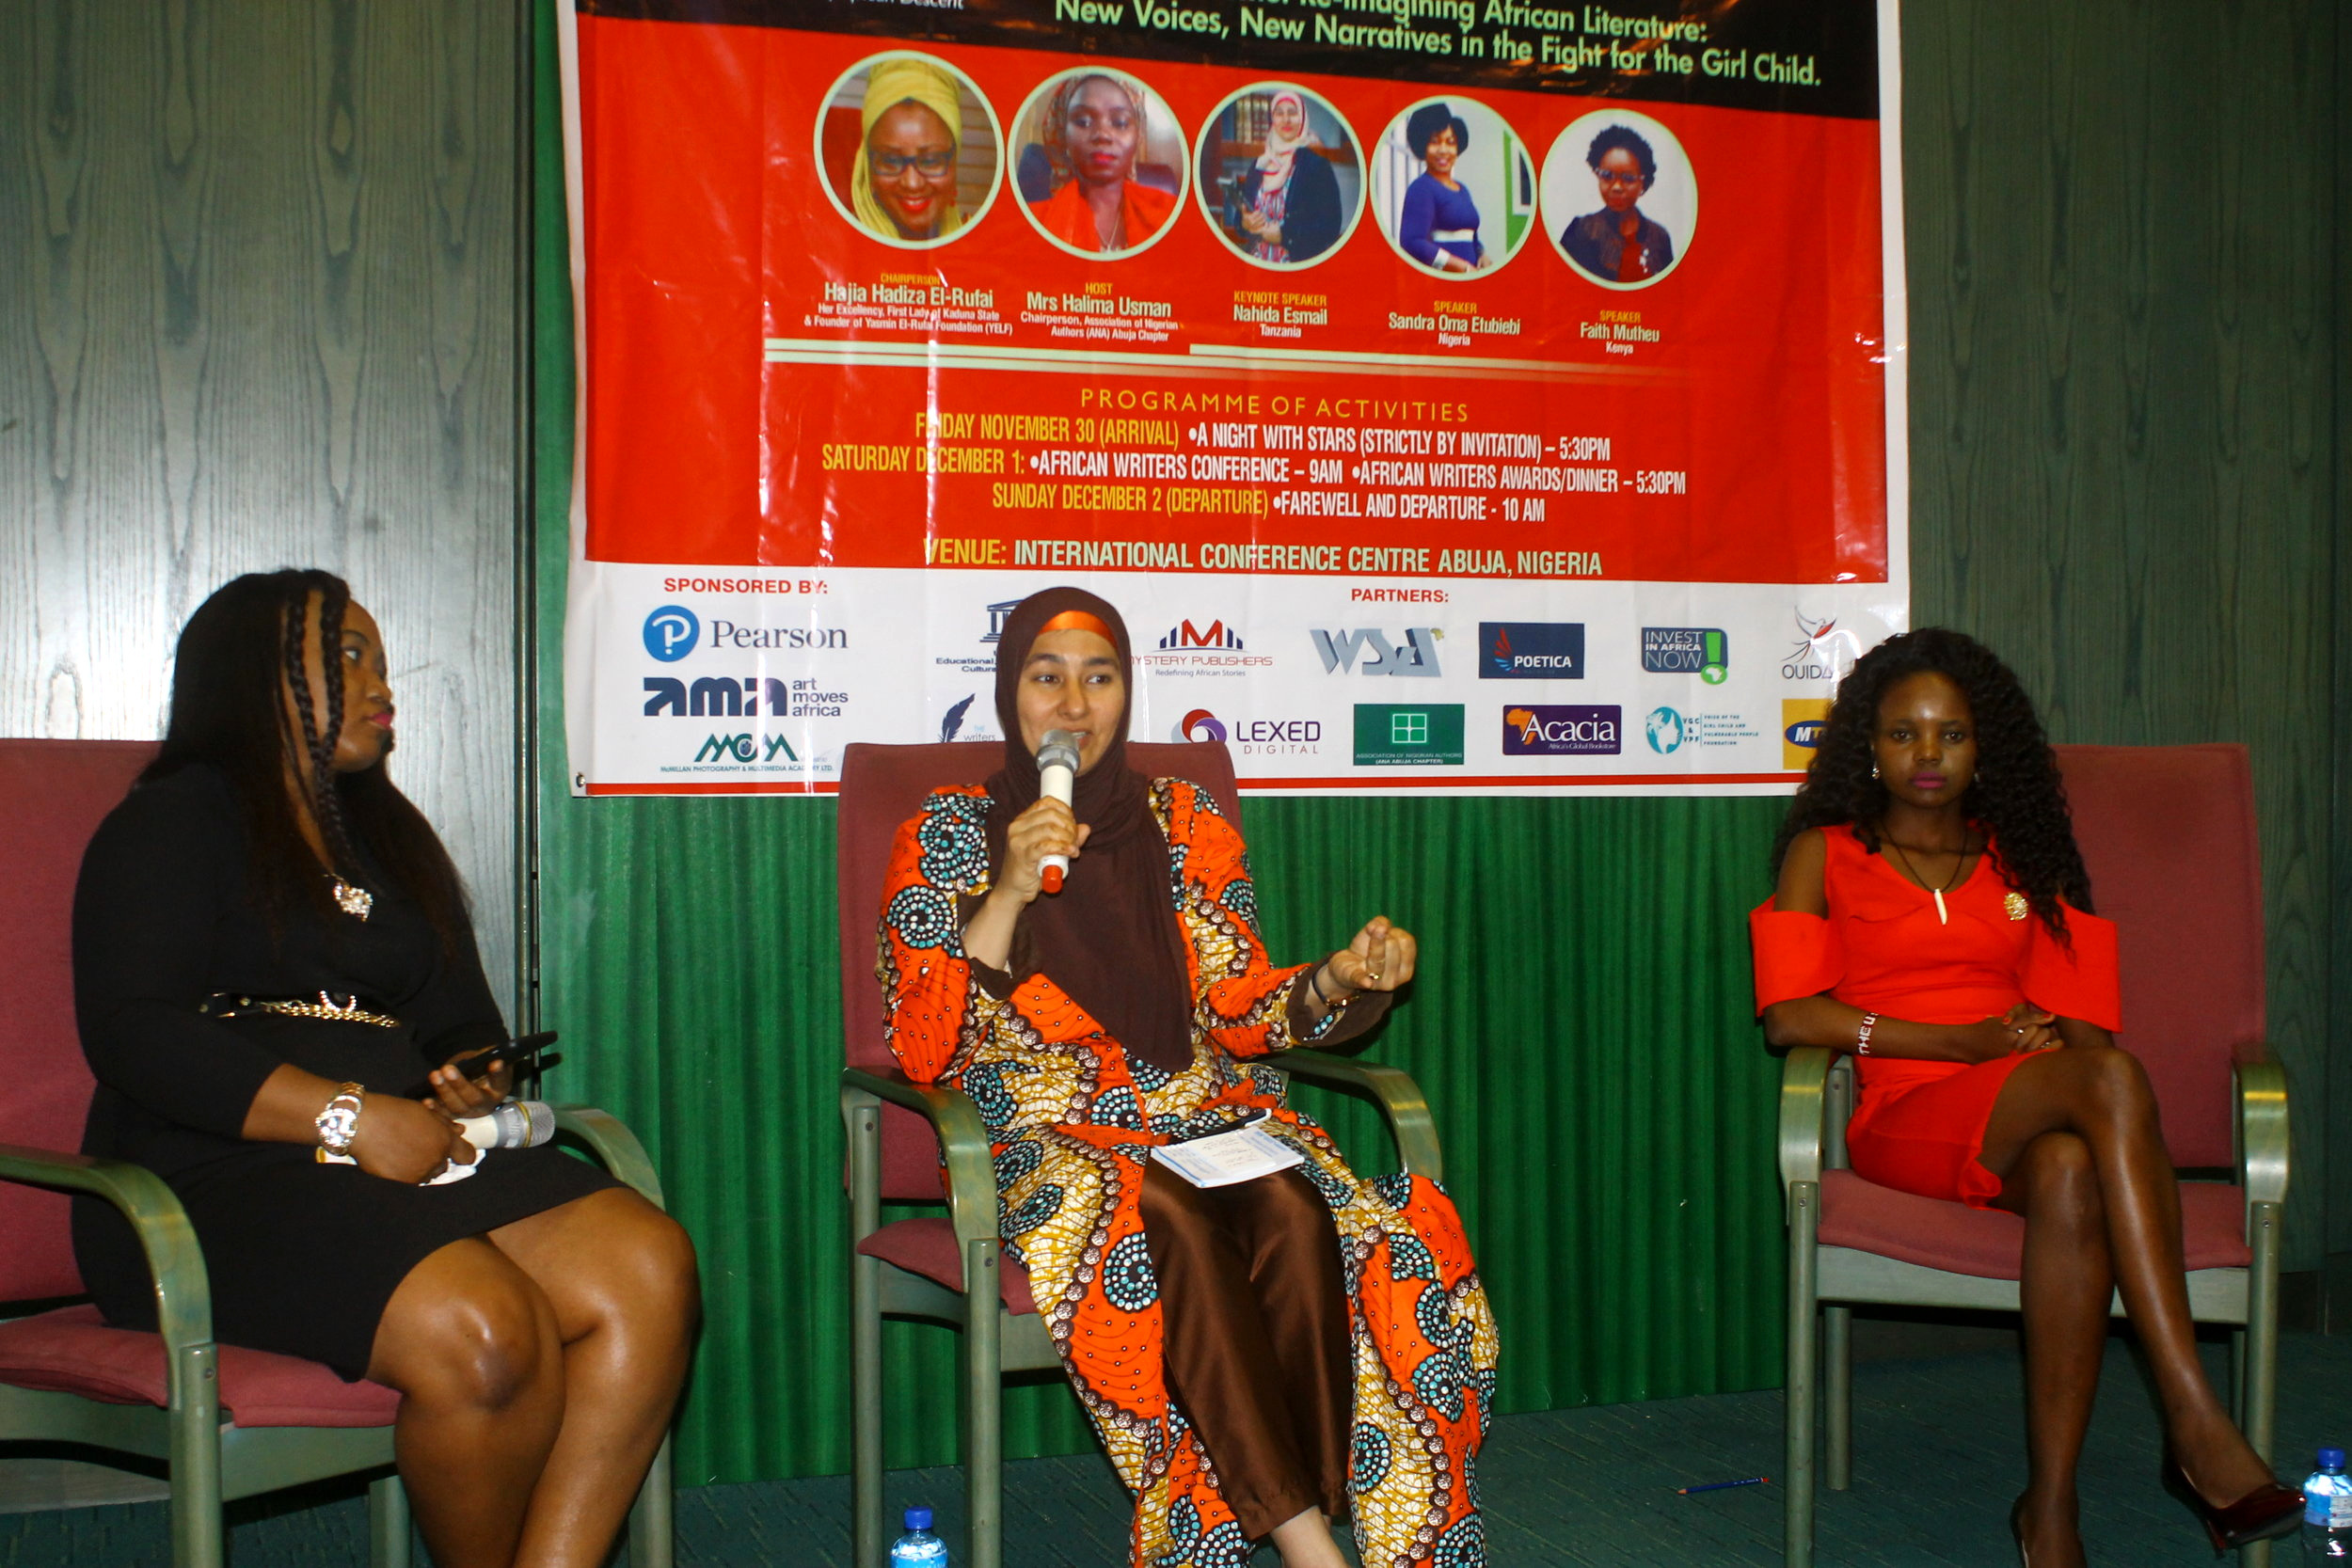 with panelists Sandra Etubiebi (Nigeria) and Faith Mutheu (Kenya) at the African Writers Conference, Abuja, Nigeria